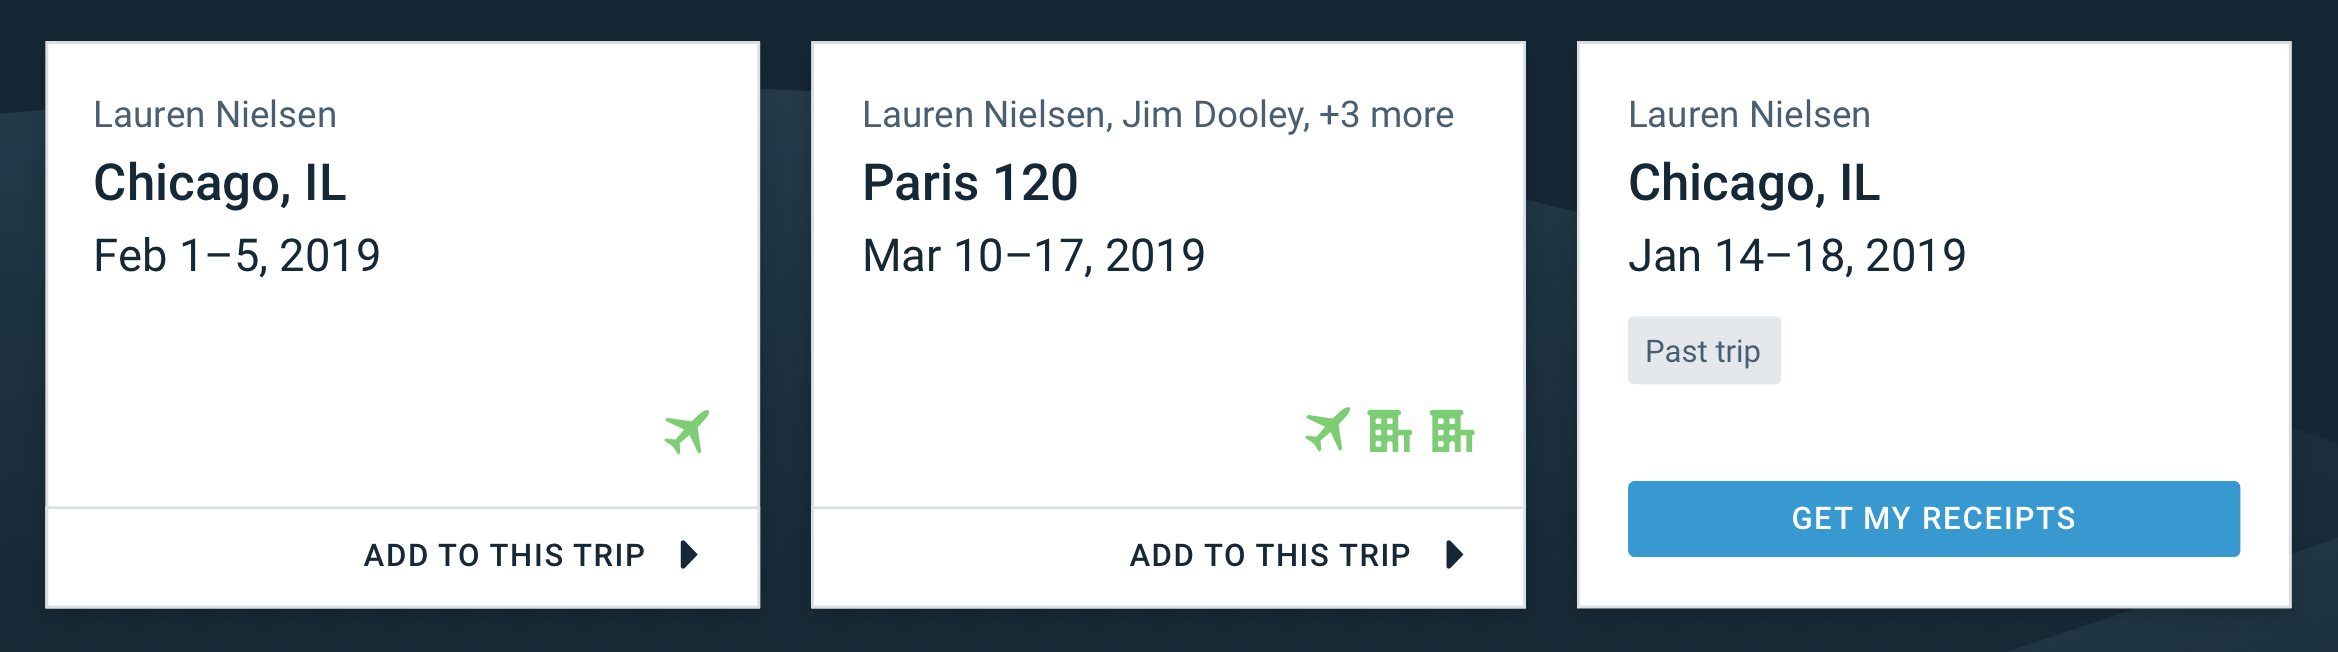 Example of a test to show travel receipts on a past trip card